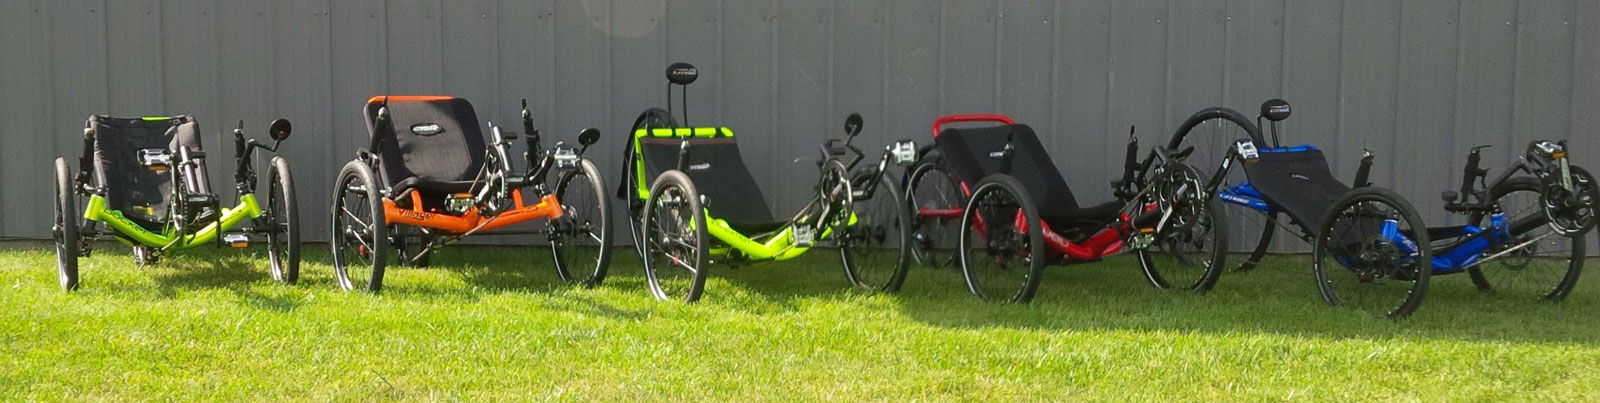 Recumbent Trikes in the Grass